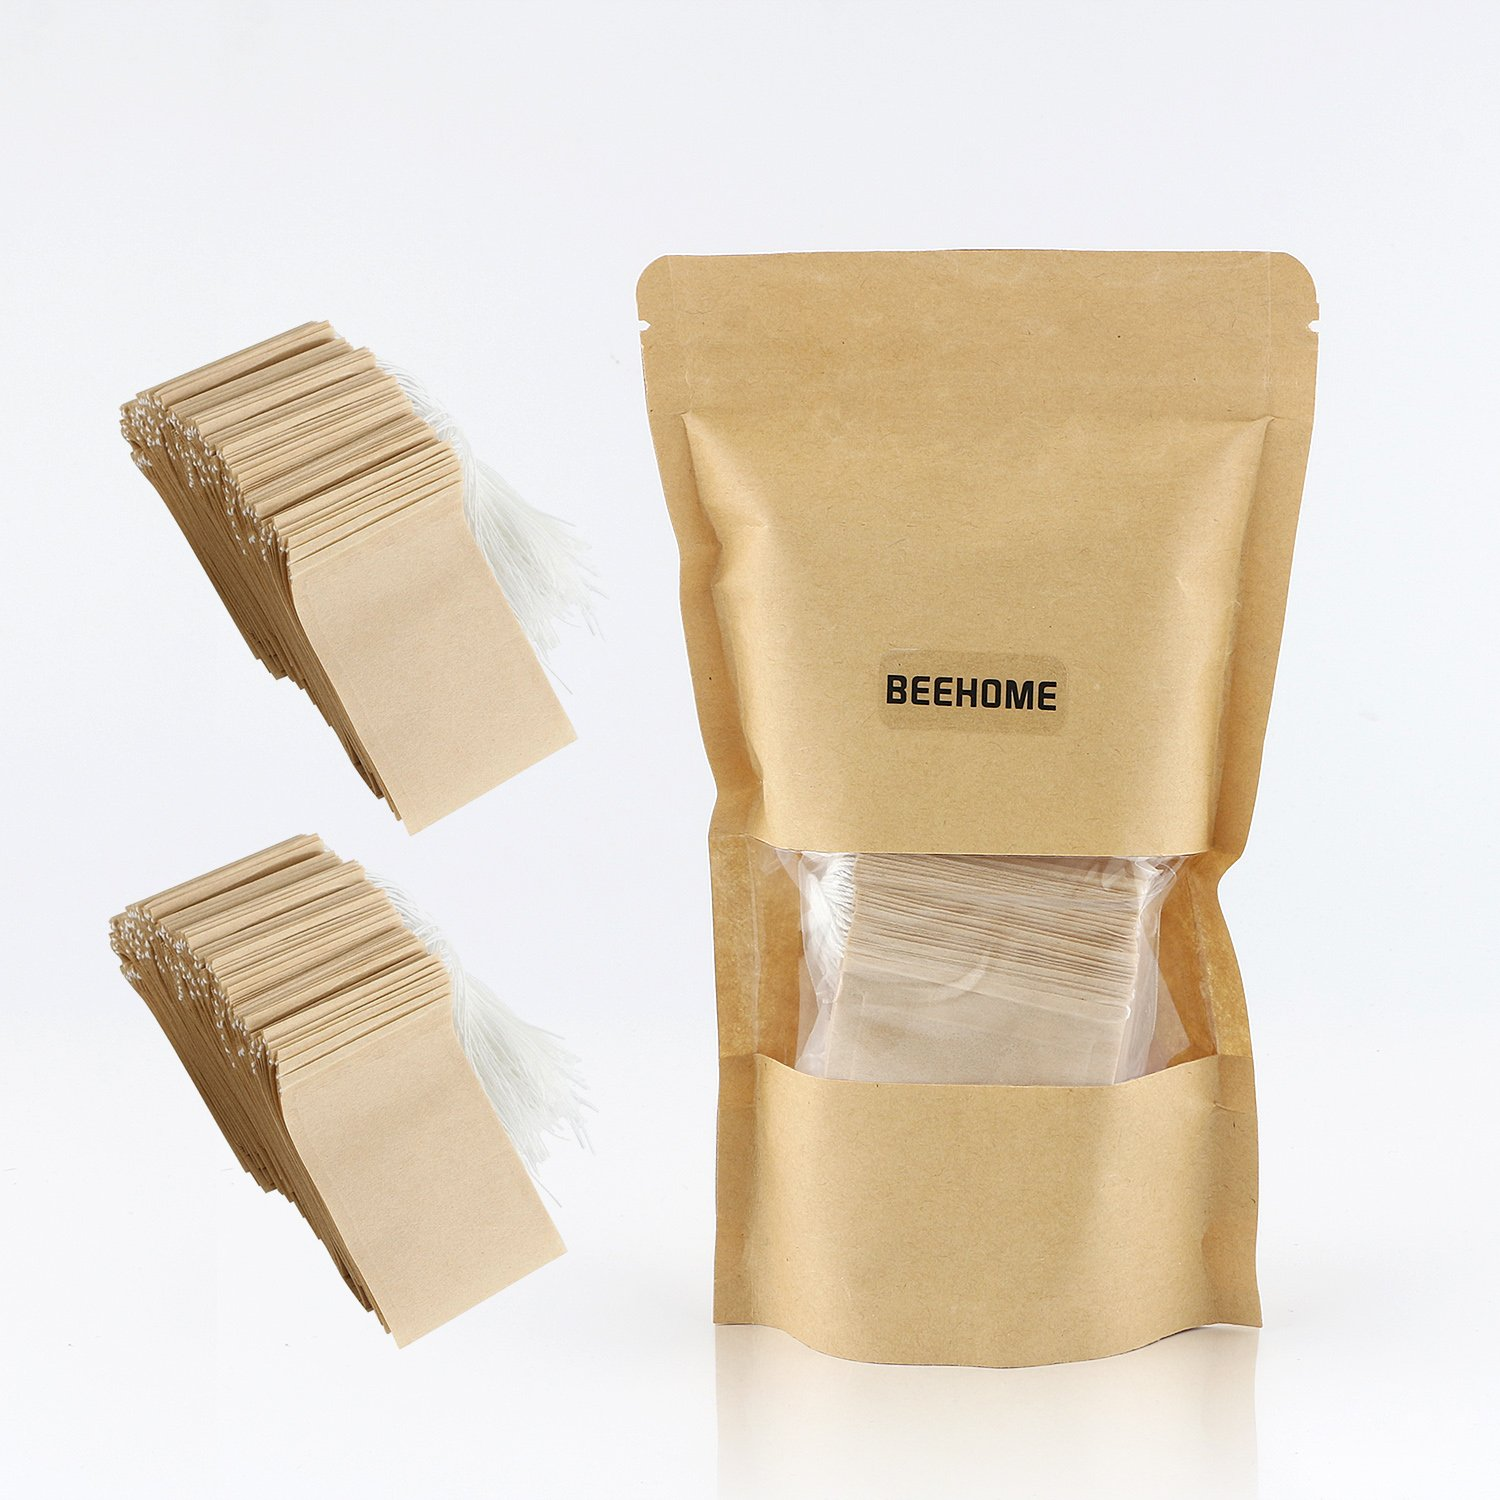 300PCS Tea Filter Bags, Disposable Paper Tea Bag with Drawstring Safe Strong Penetration Unbleached Paper for Loose Leaf Tea and Coffee by BEEHOME (Image #6)